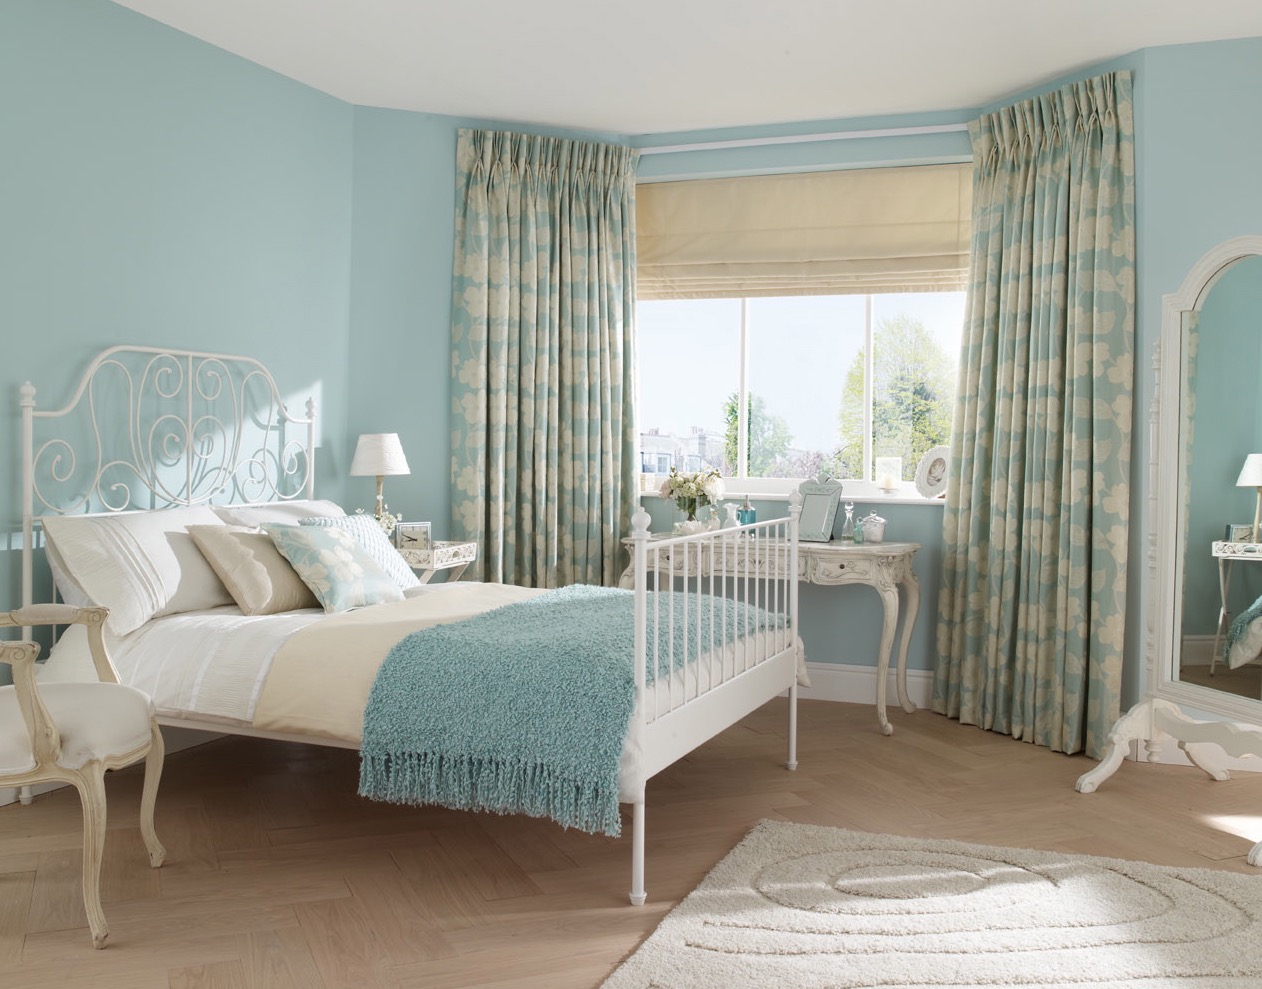 Traditional Bedroom With Double Sheer Curtains (Image 12 of 12)